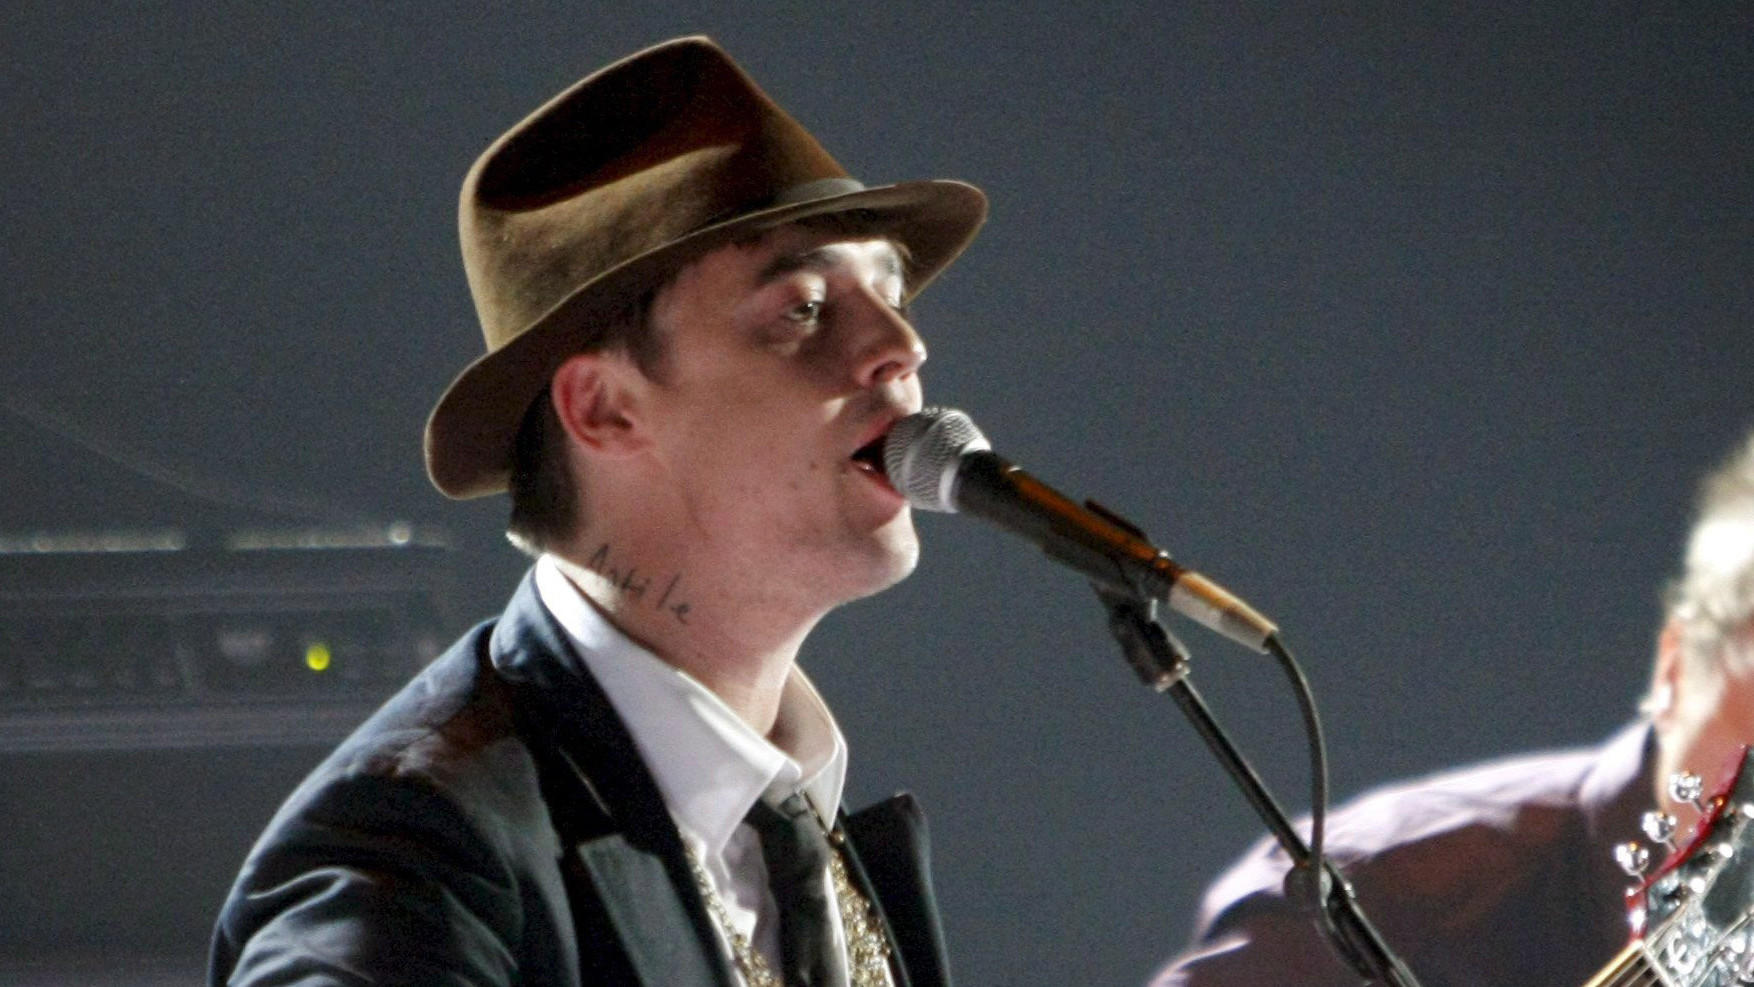 Pete Doherty has announced he will reunite with his band the Libertines for a July 5 show in London.